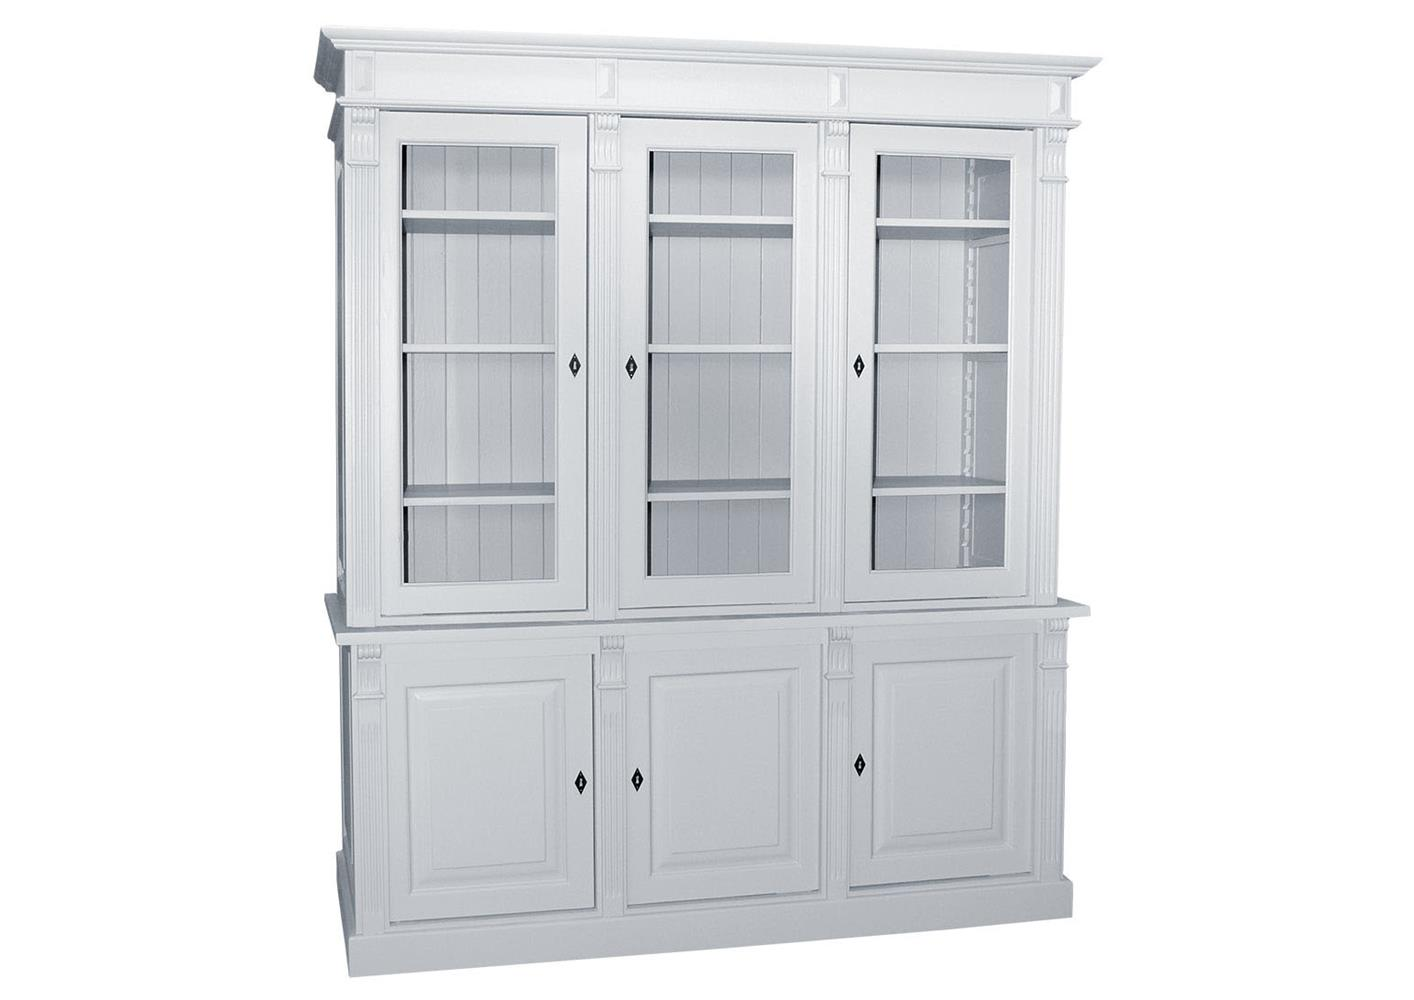 bibliotheque en pin massif blanc 3 portes vitrees